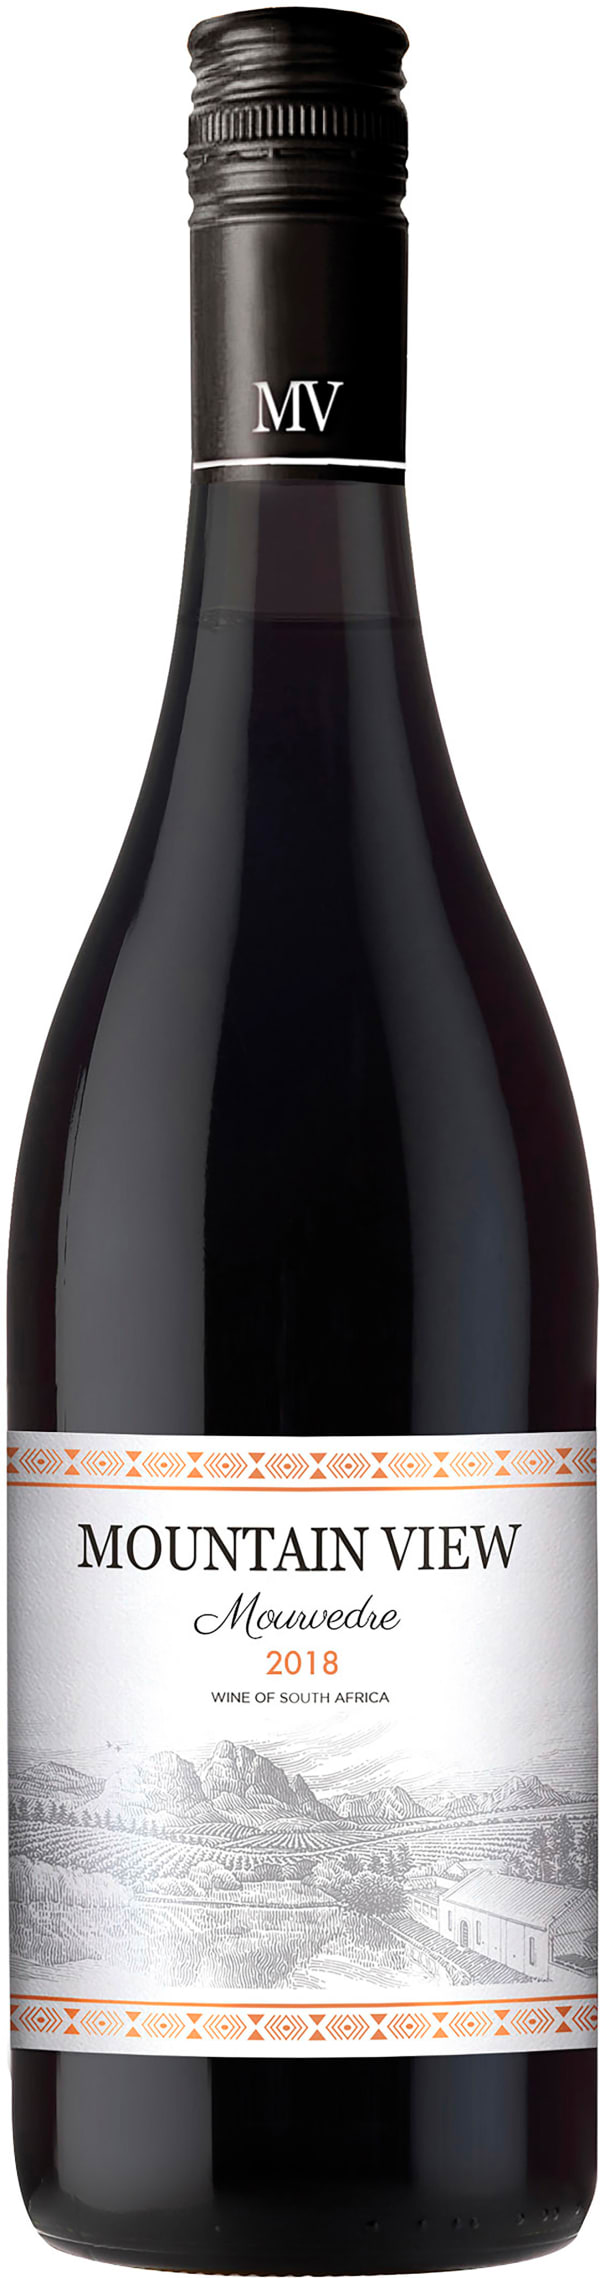 Mountain View Mourvedre 2018